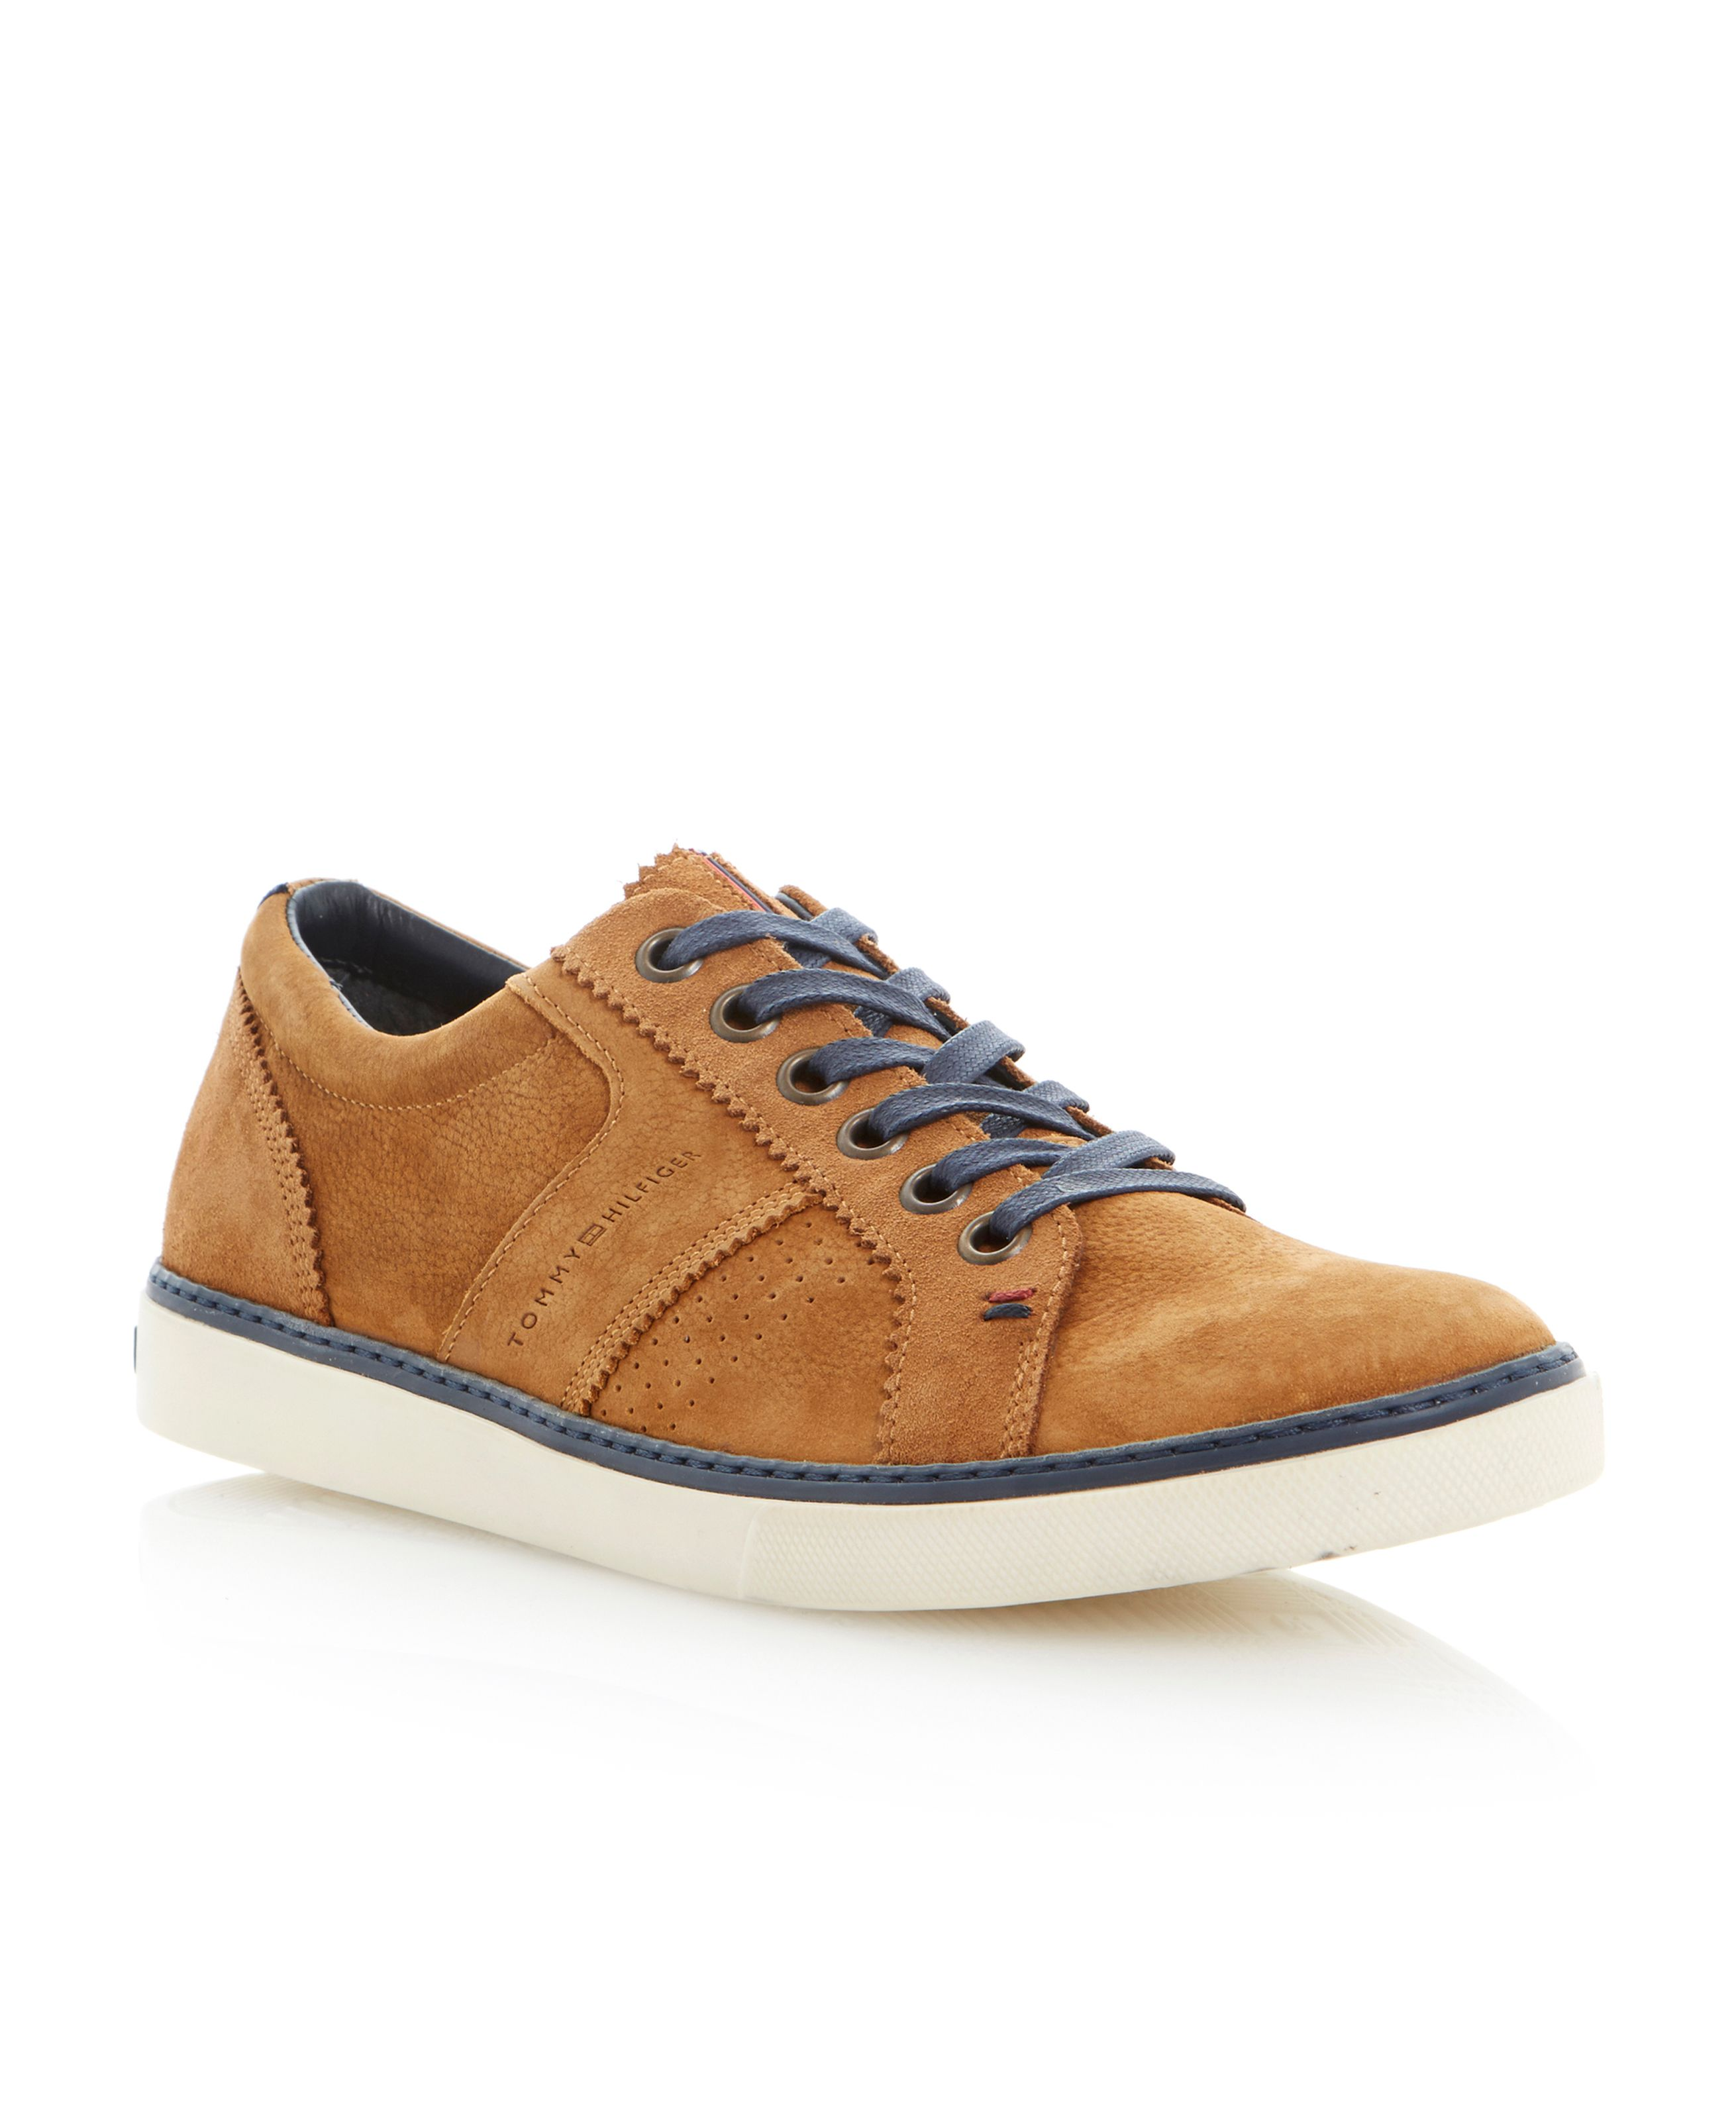 Cliffdale 8n contrast lace smart sneakers